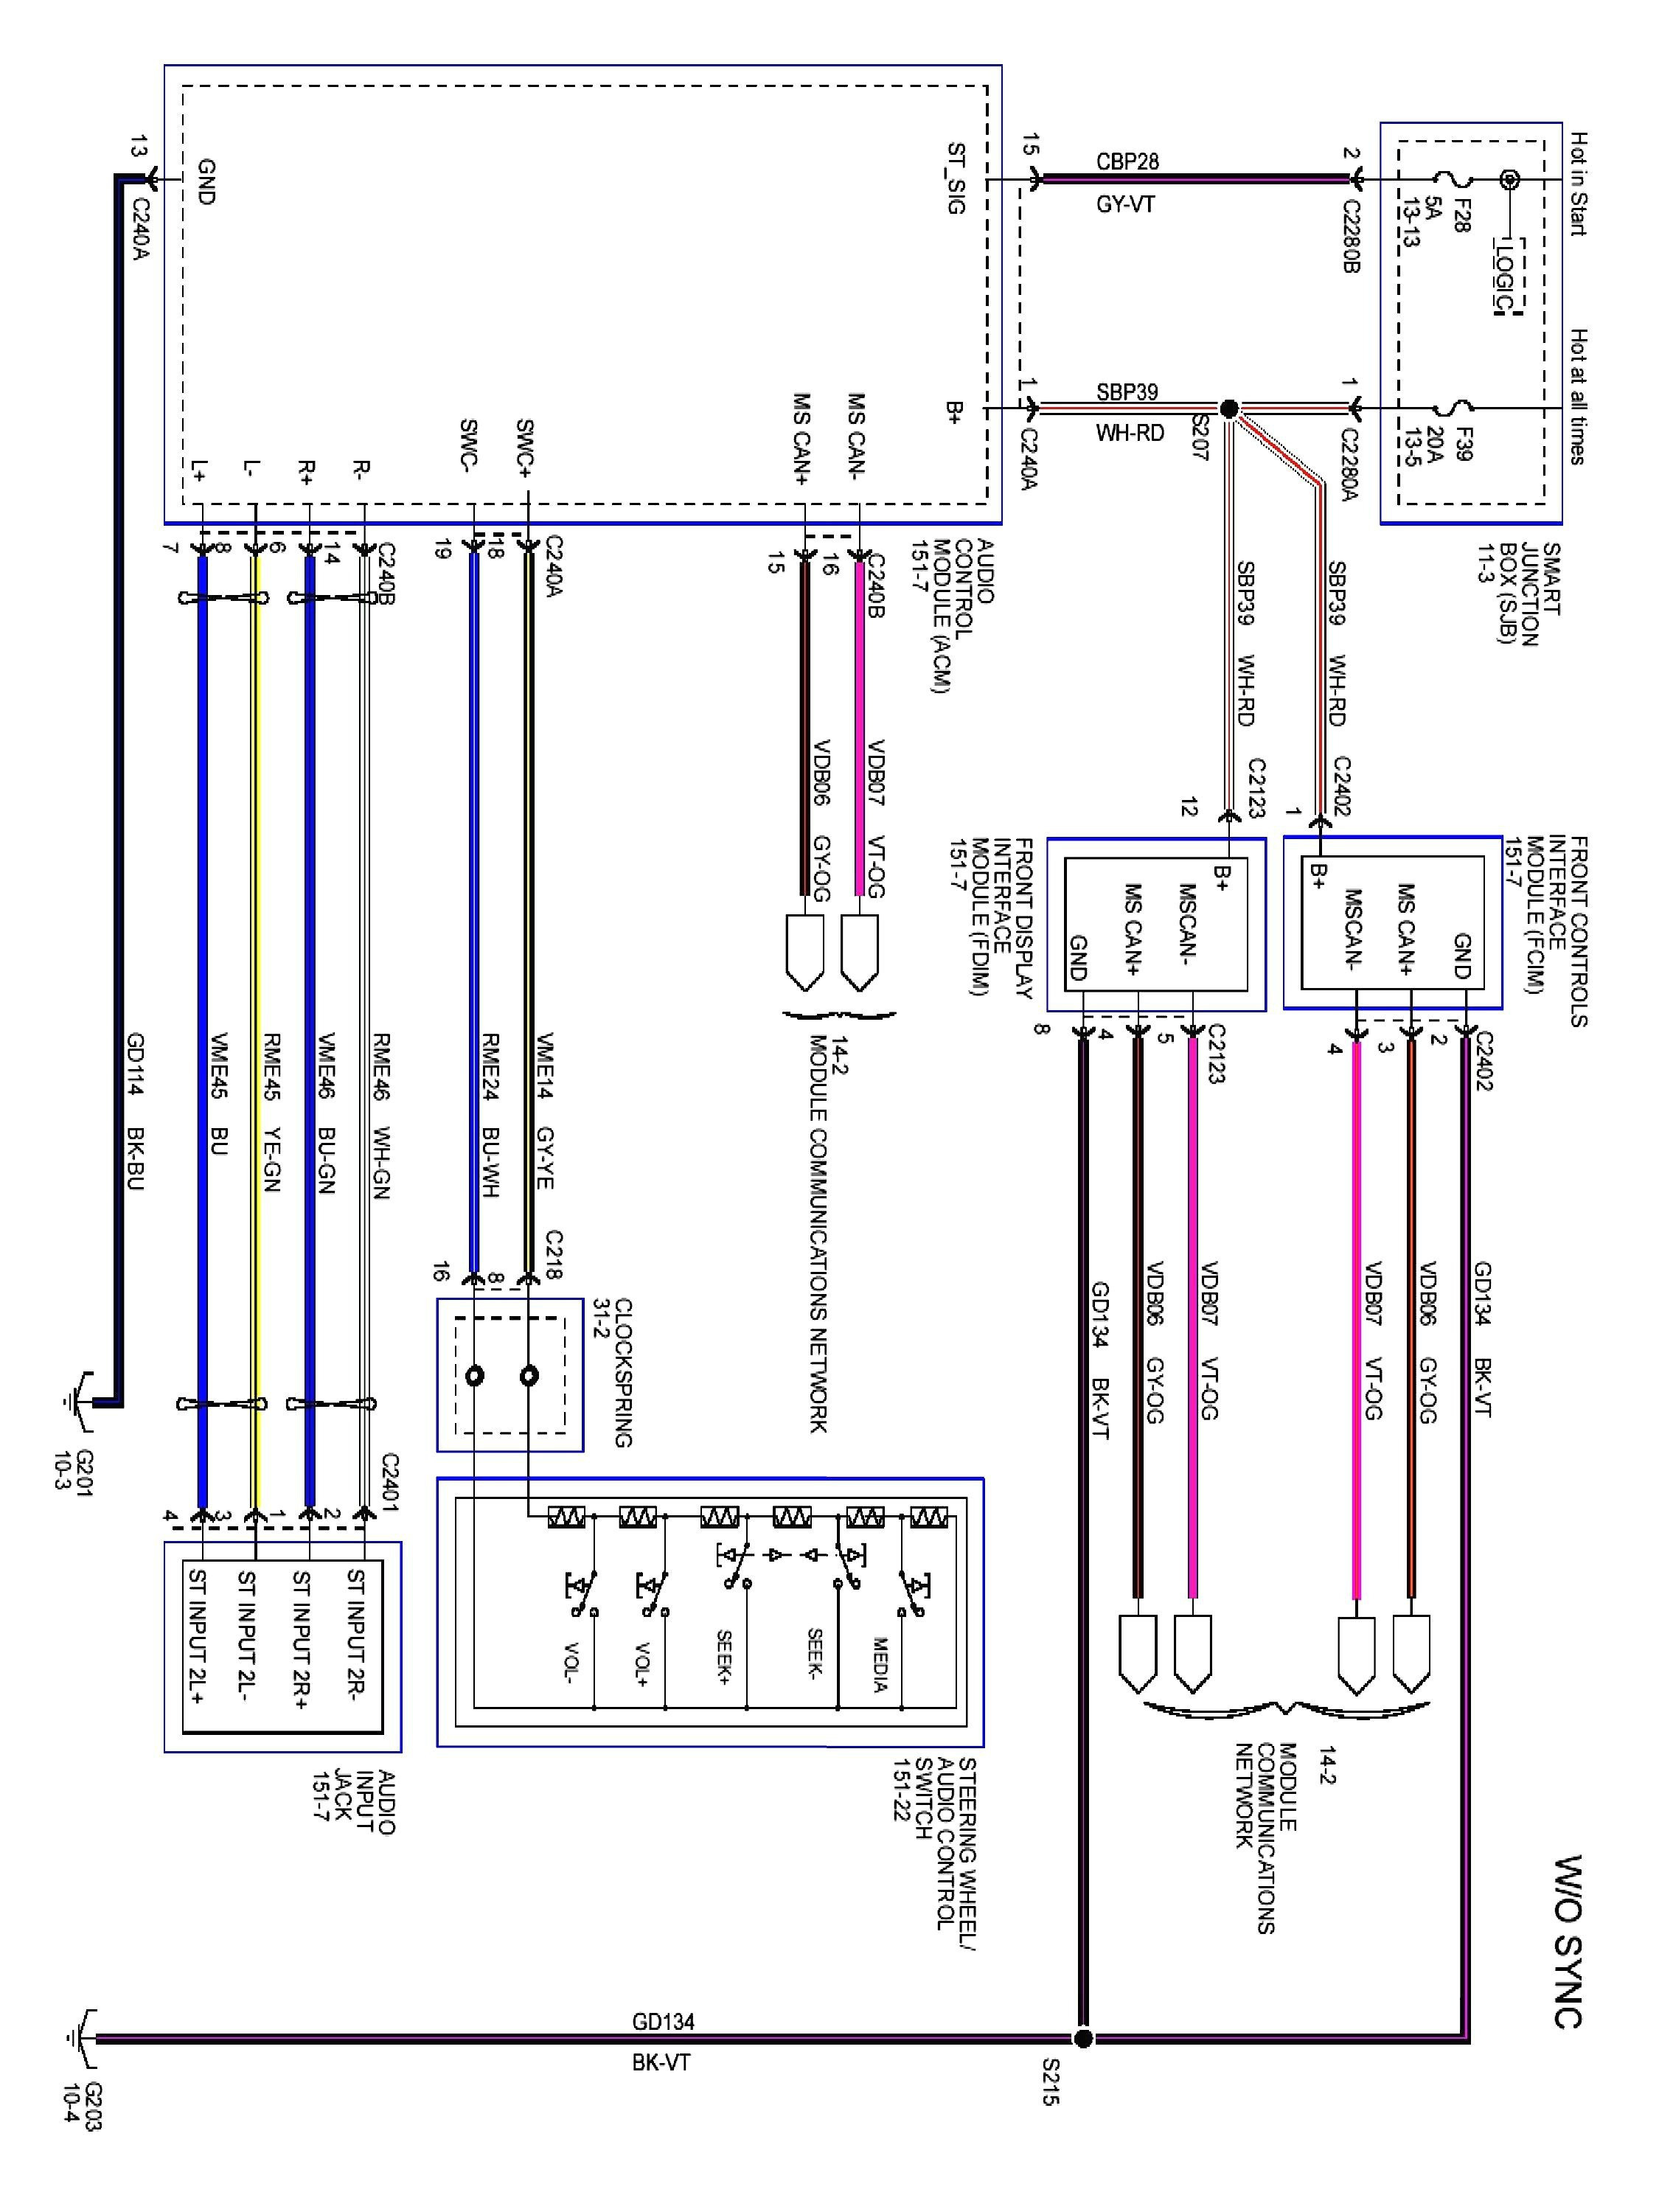 kbic 120 wiring diagram Download-towbar relay wiring diagram save bmw x3 wiring harness electrical rh ipphil bmw x3 trailer 16-n